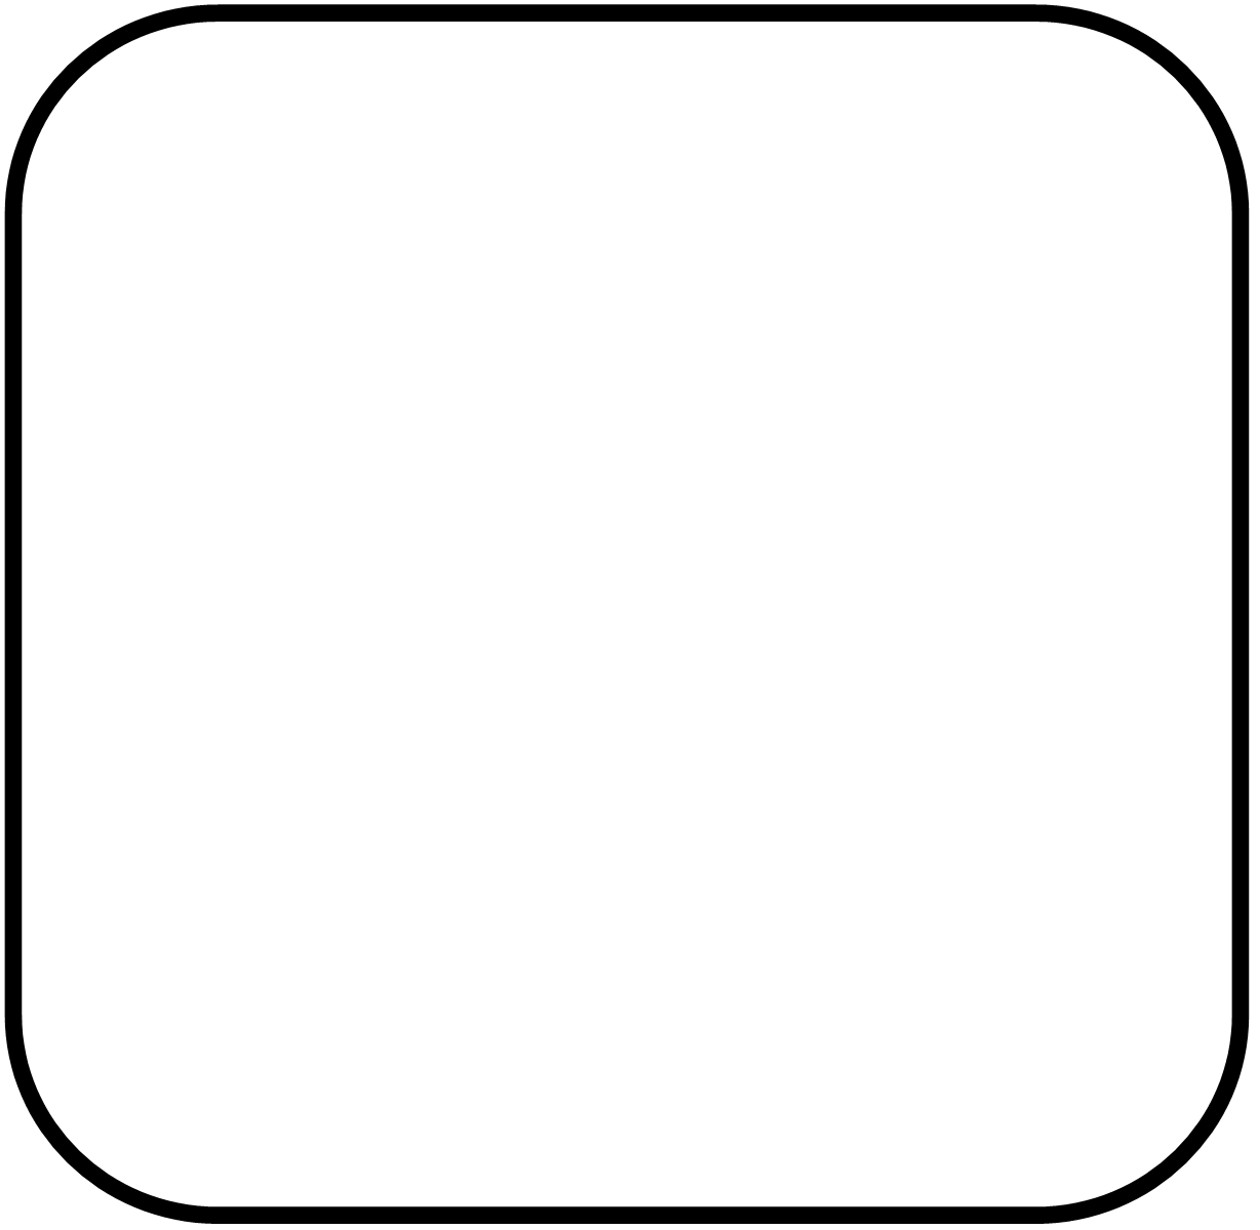 White round square clipart png black and white library Free Curved Rectangles Cliparts, Download Free Clip Art ... png black and white library